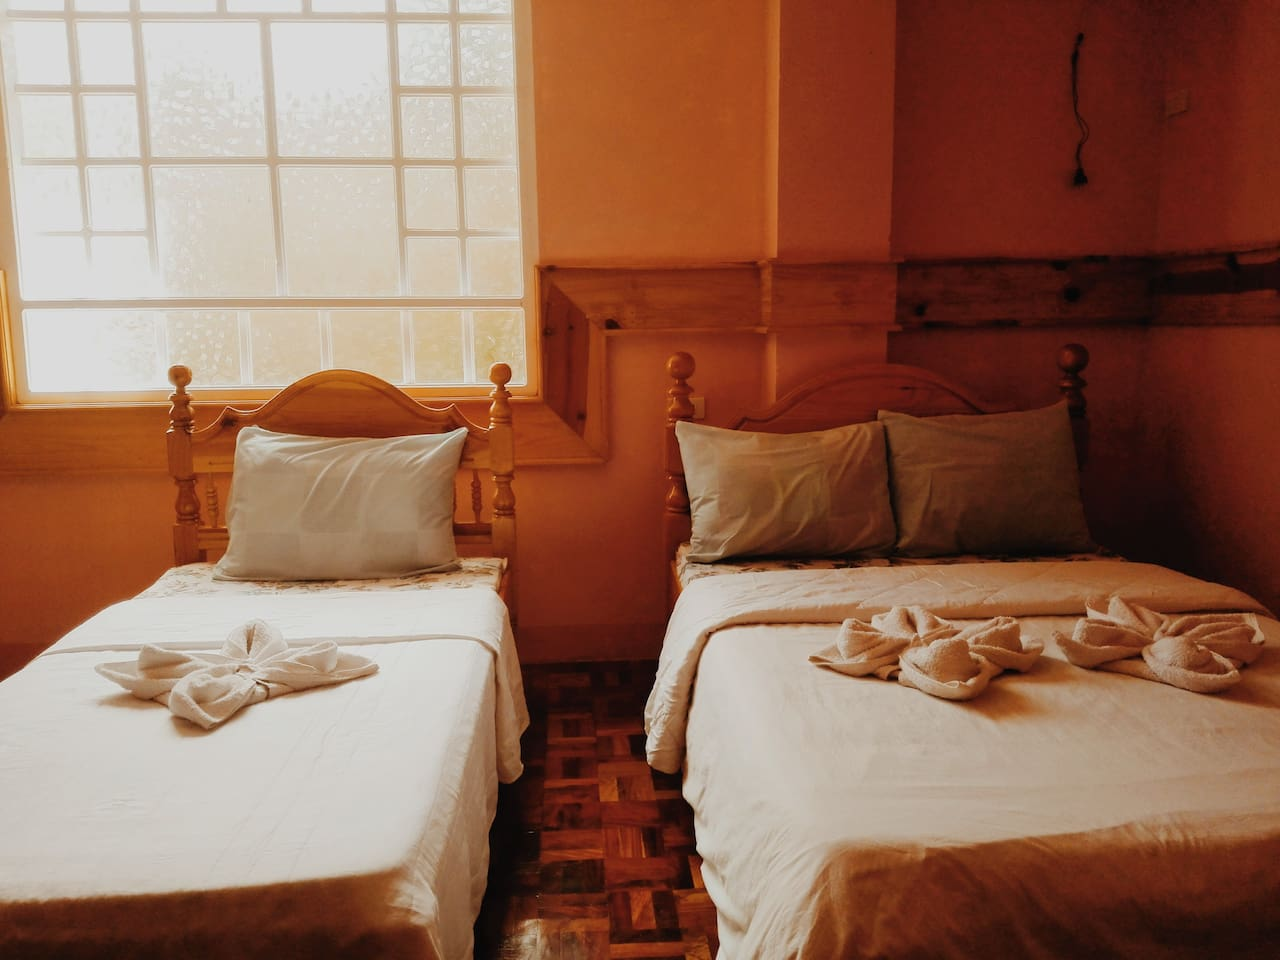 Kapya: A private room at the lower floor of Inandako's BnB